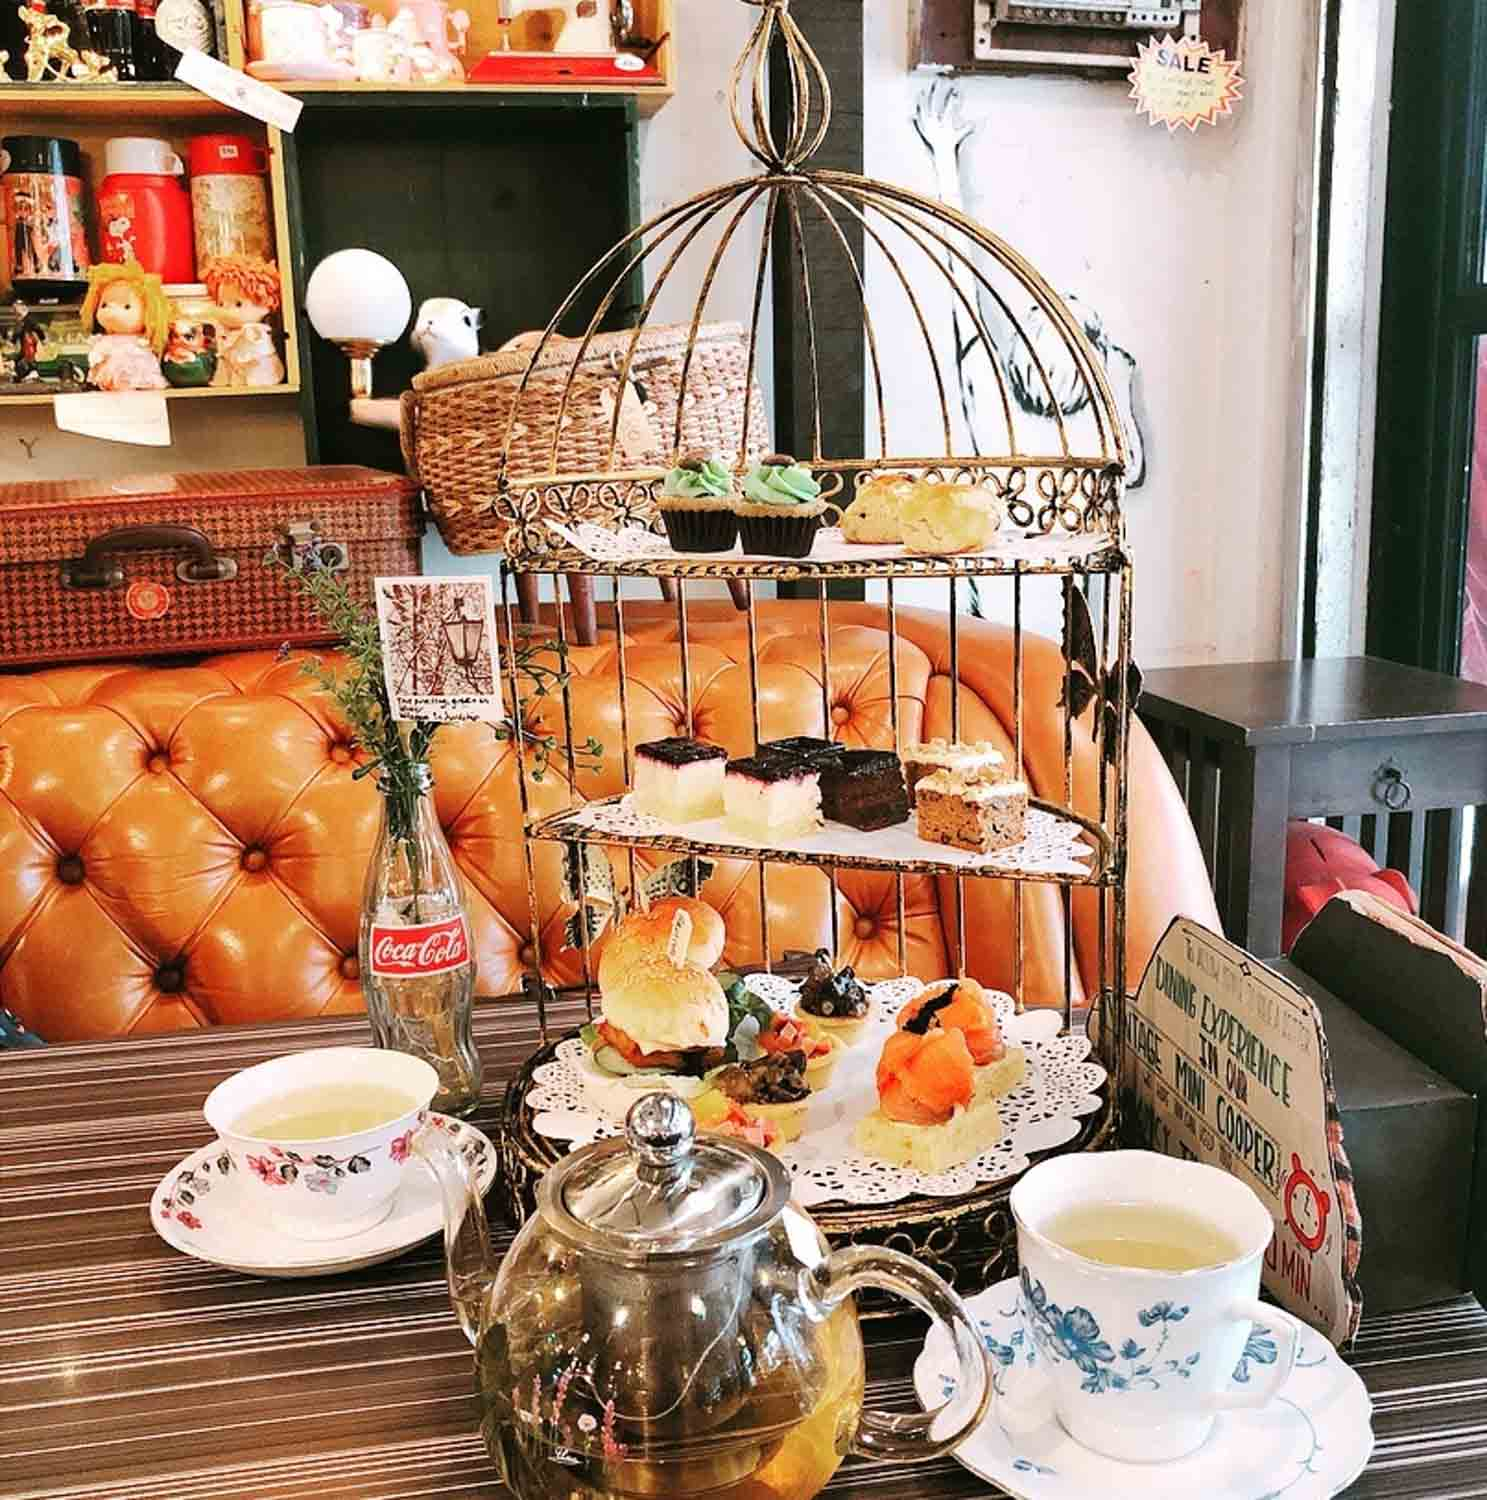 Affordable High Tea - Brunches Cafe